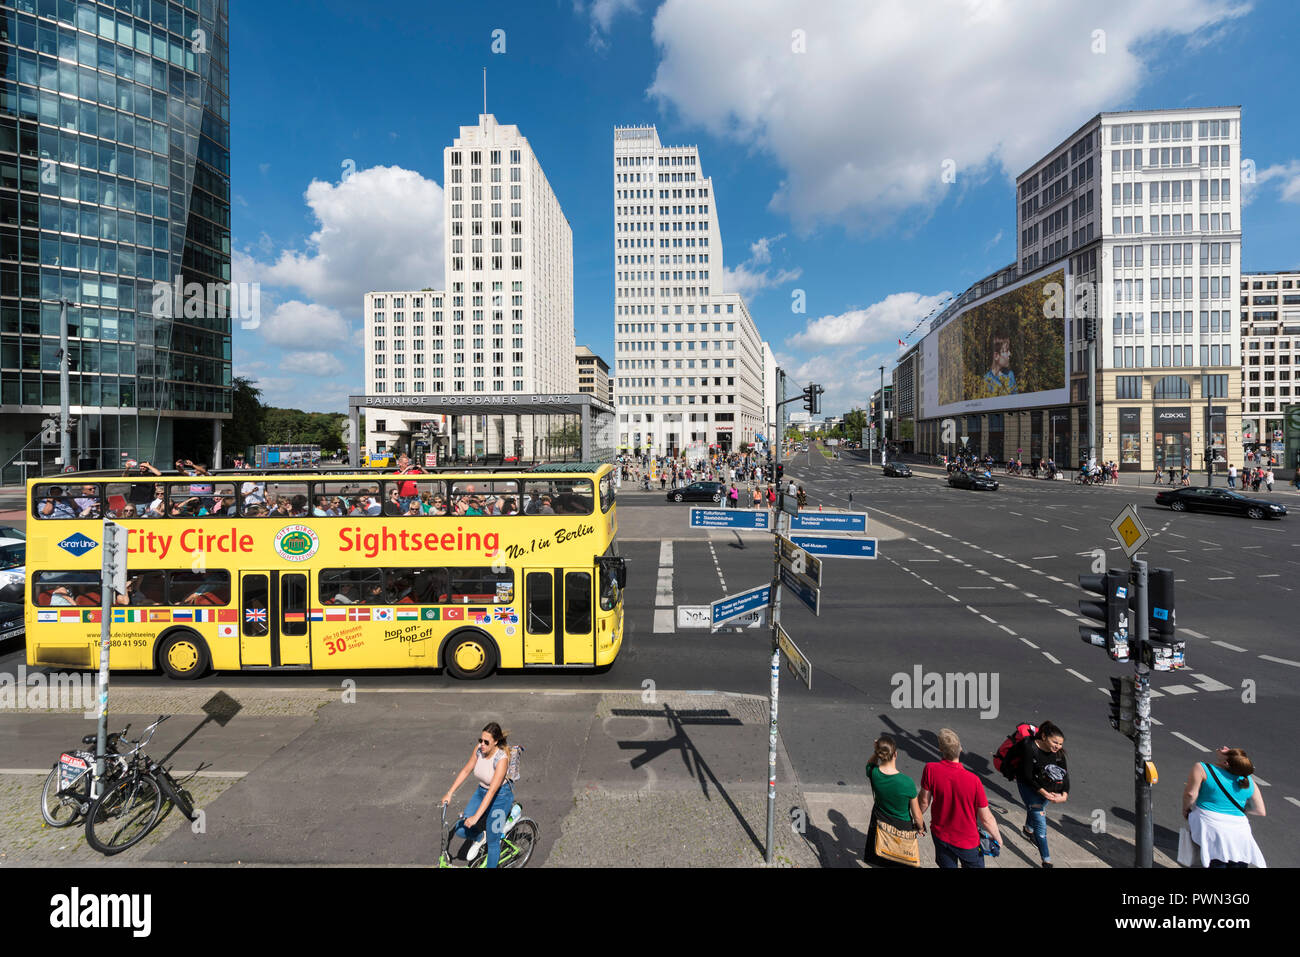 Berlin. Germany. Yellow City Circle Sightseeing bus on Potsdamer Platz. Elevated view. - Stock Image